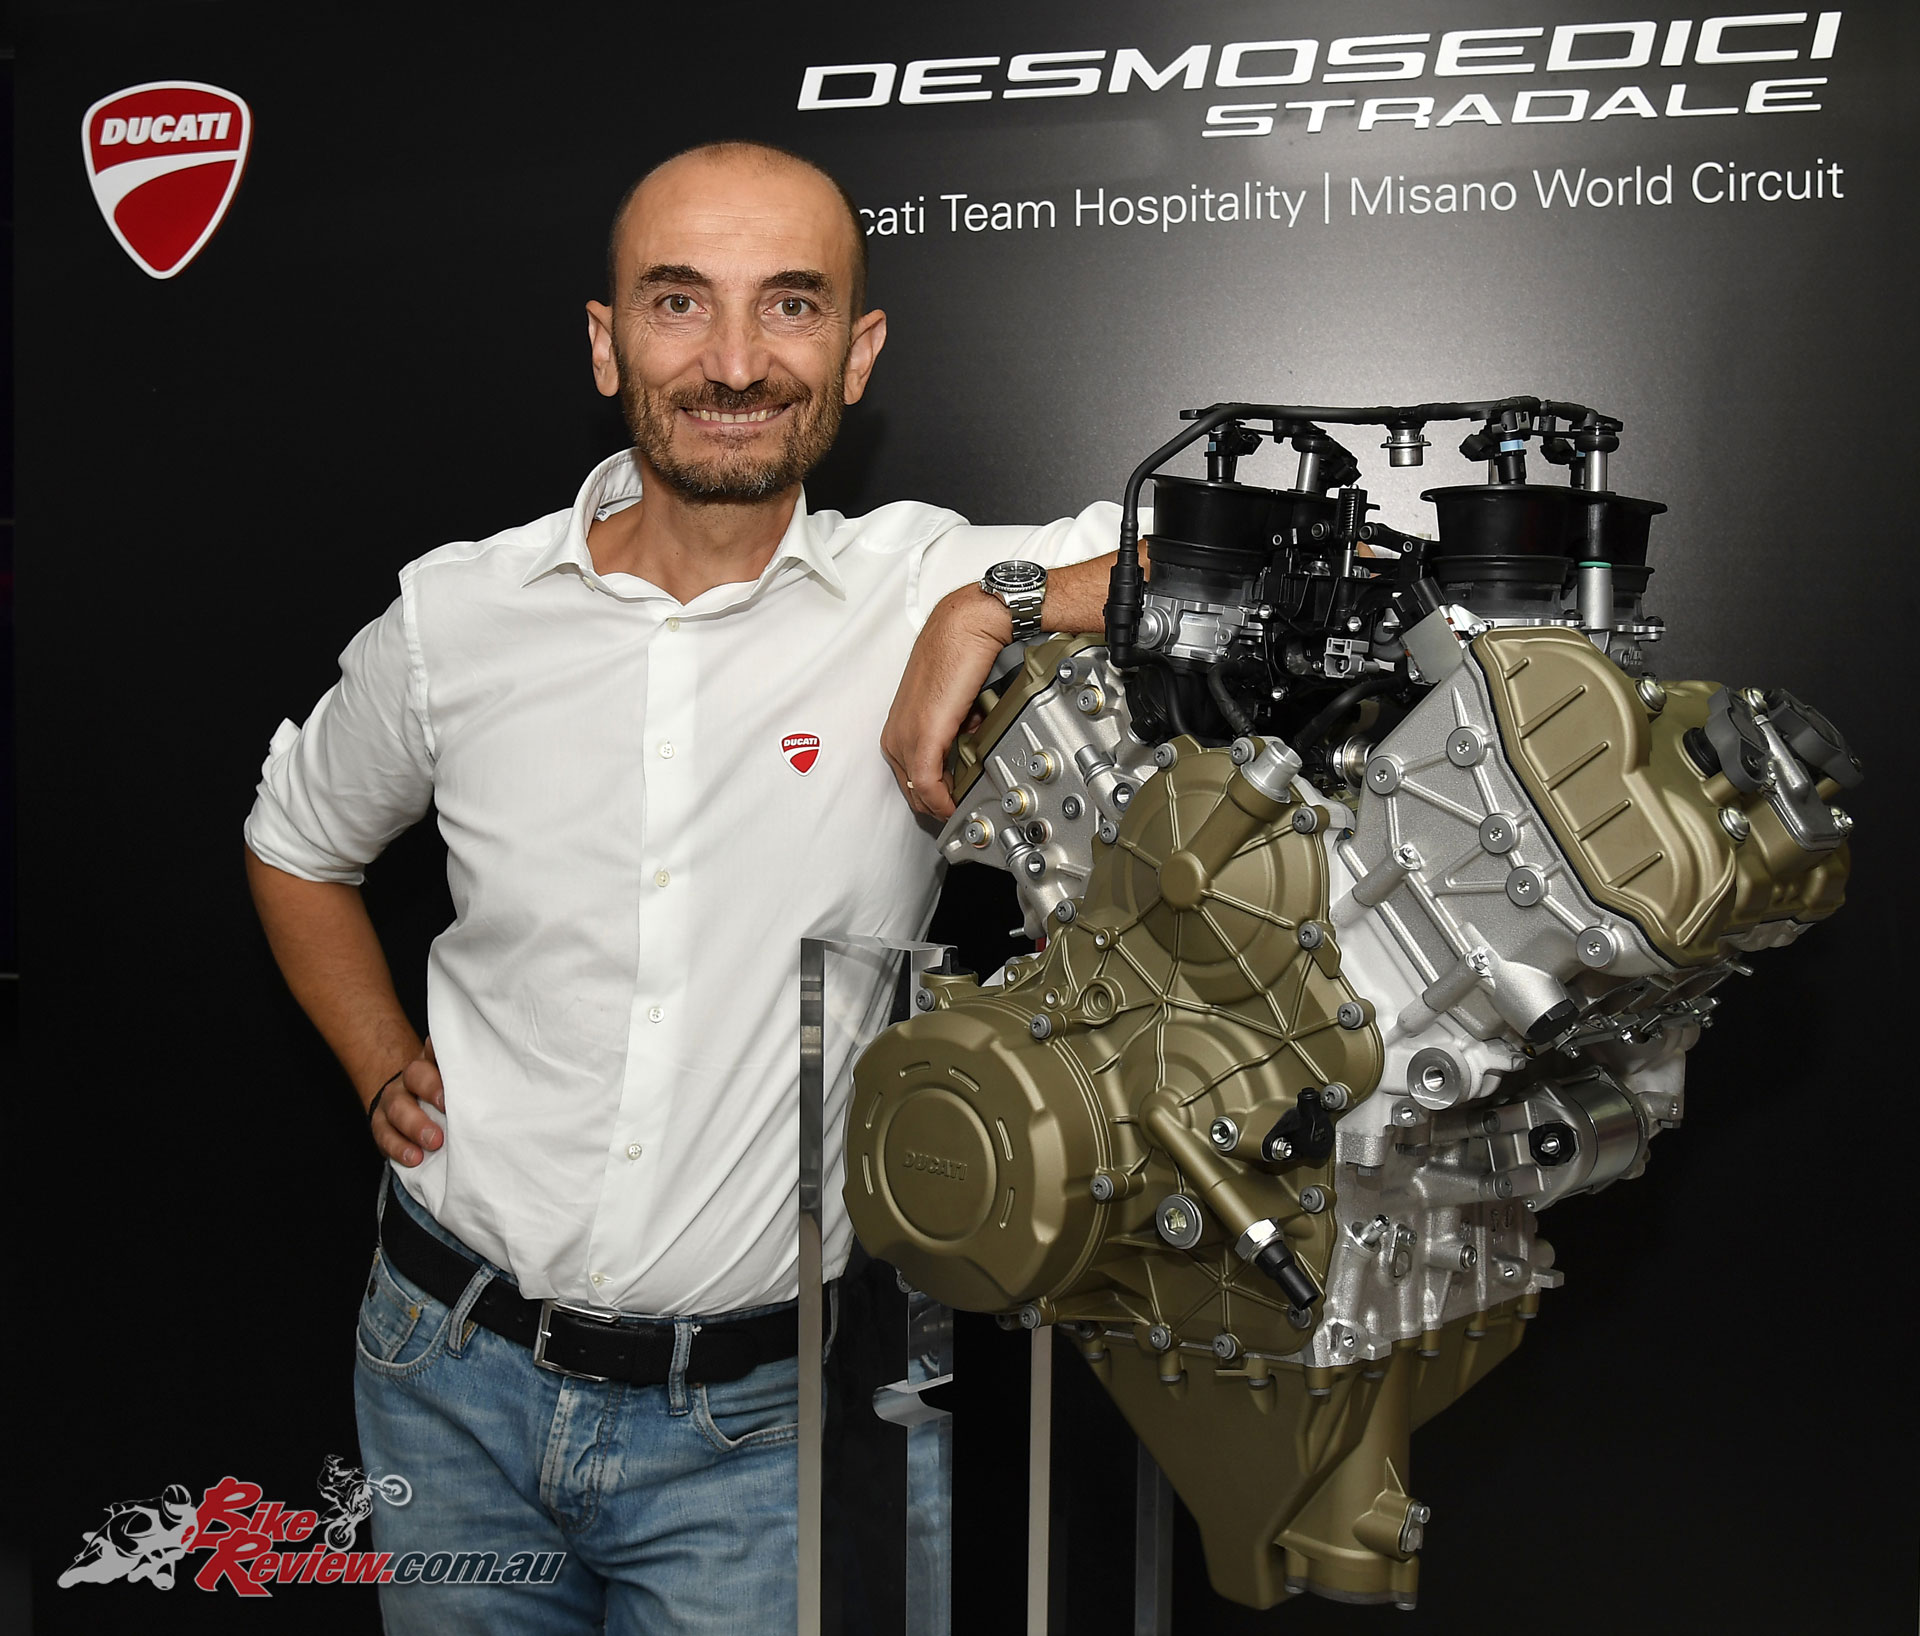 Claudio Domenicali and the Desmosedici Stradale powerplant